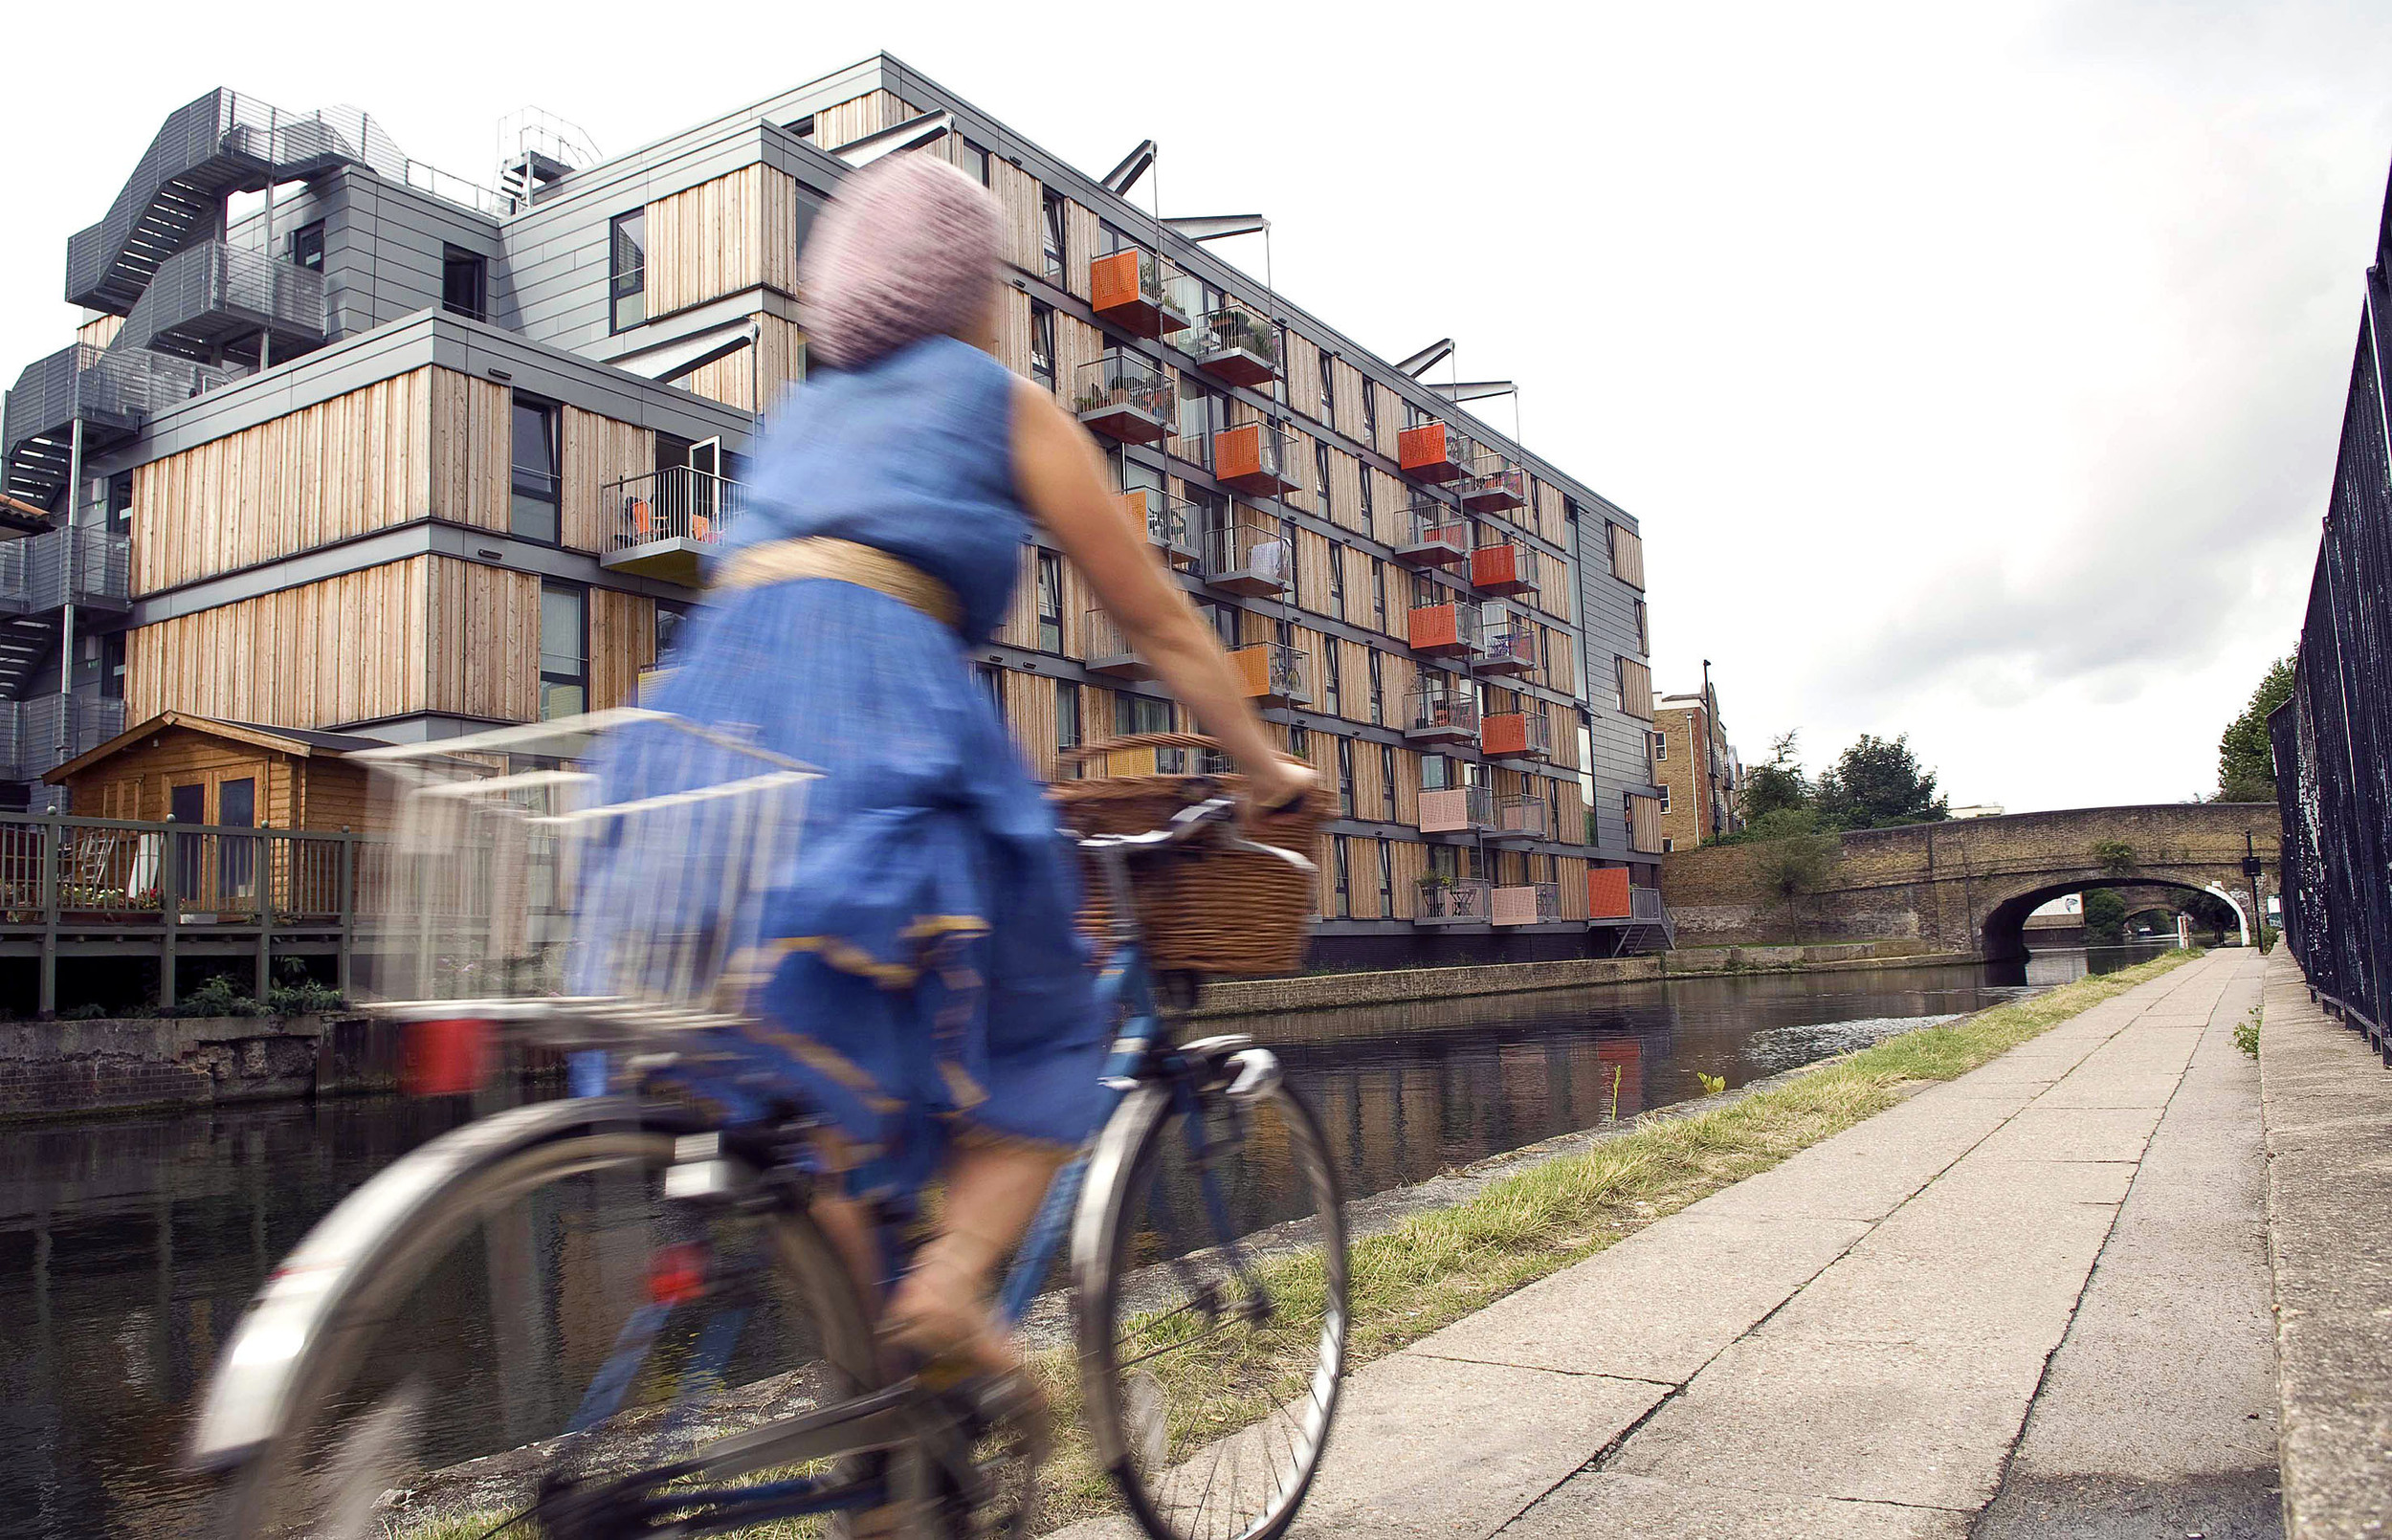 Environmental portrait of a woman on a bike cycling by a canal in London